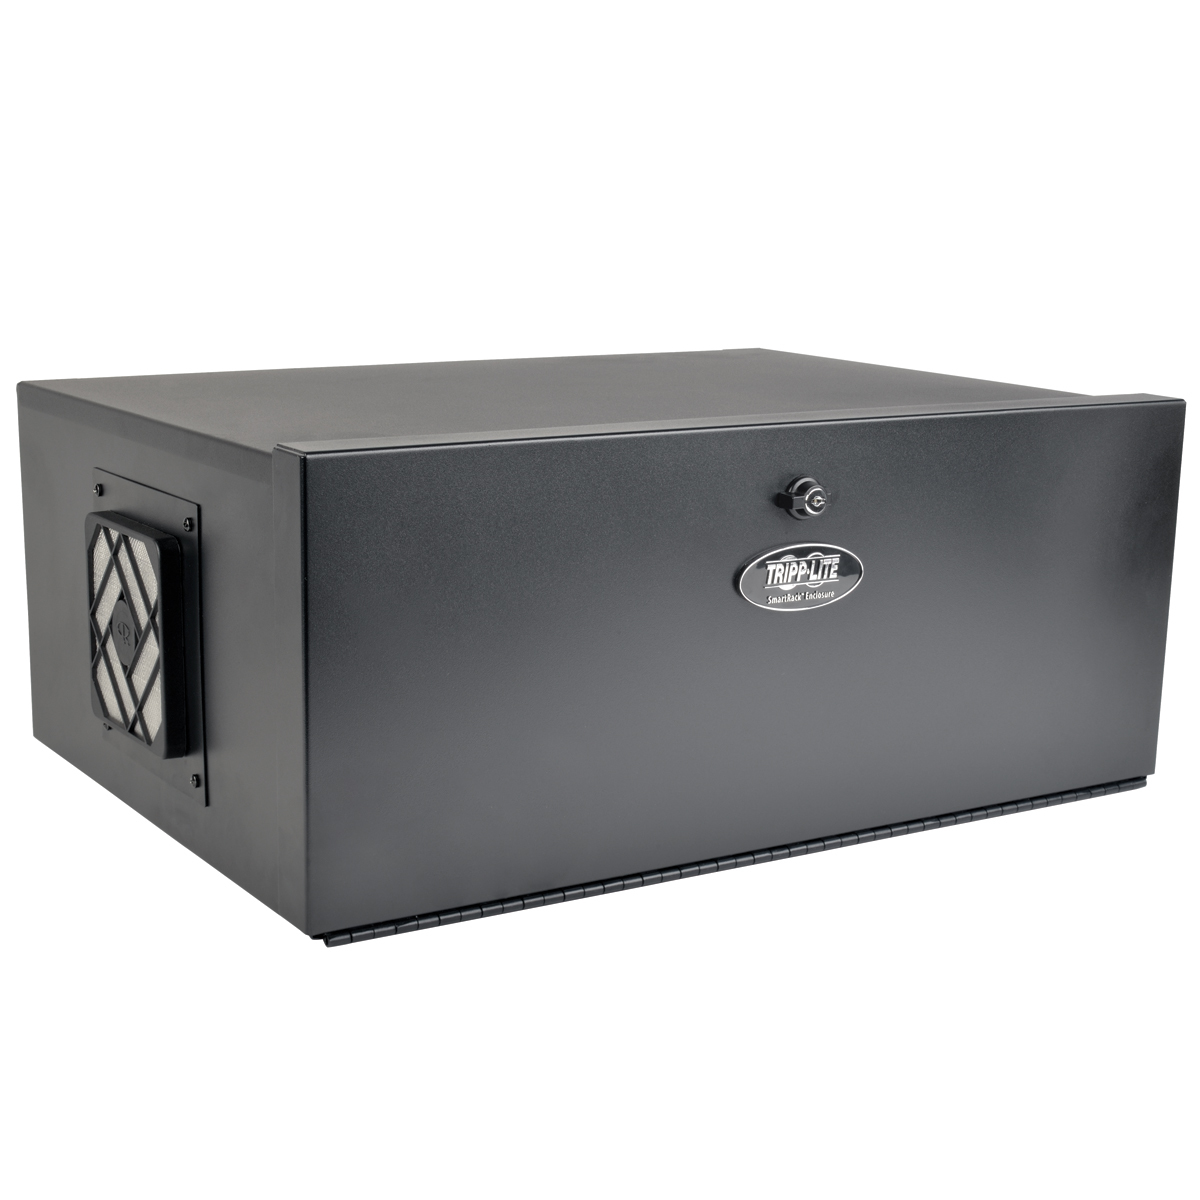 5U Security DVR Lockbox Rack Enclosure 60lb Capacity Black - Rack - cabinet - black - 5U